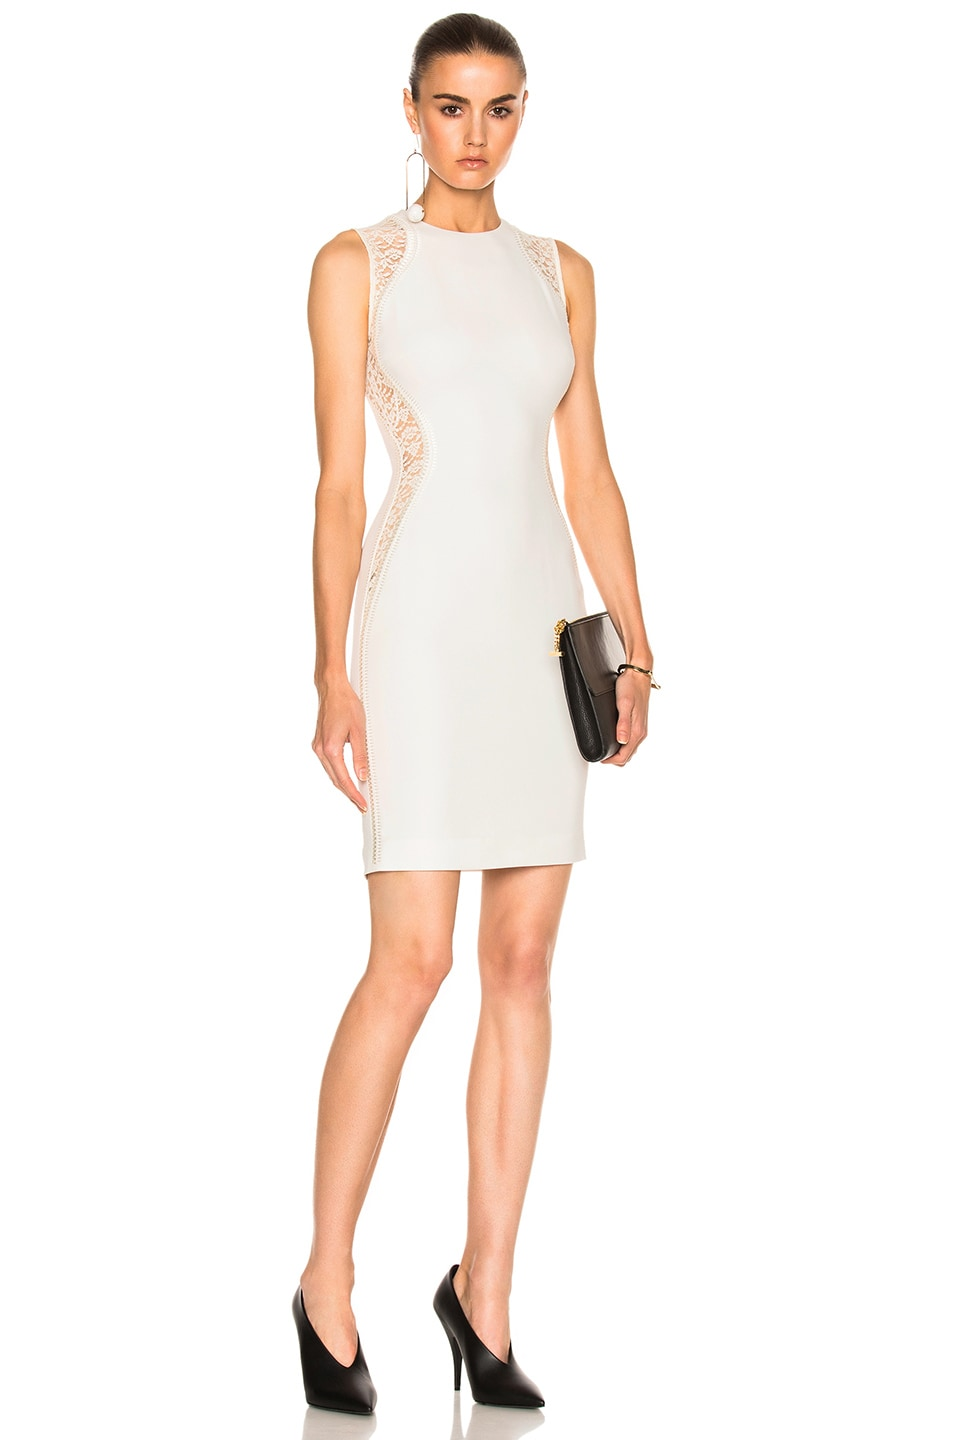 Stella McCartney Stretch Cady Sleeveless Dress in White